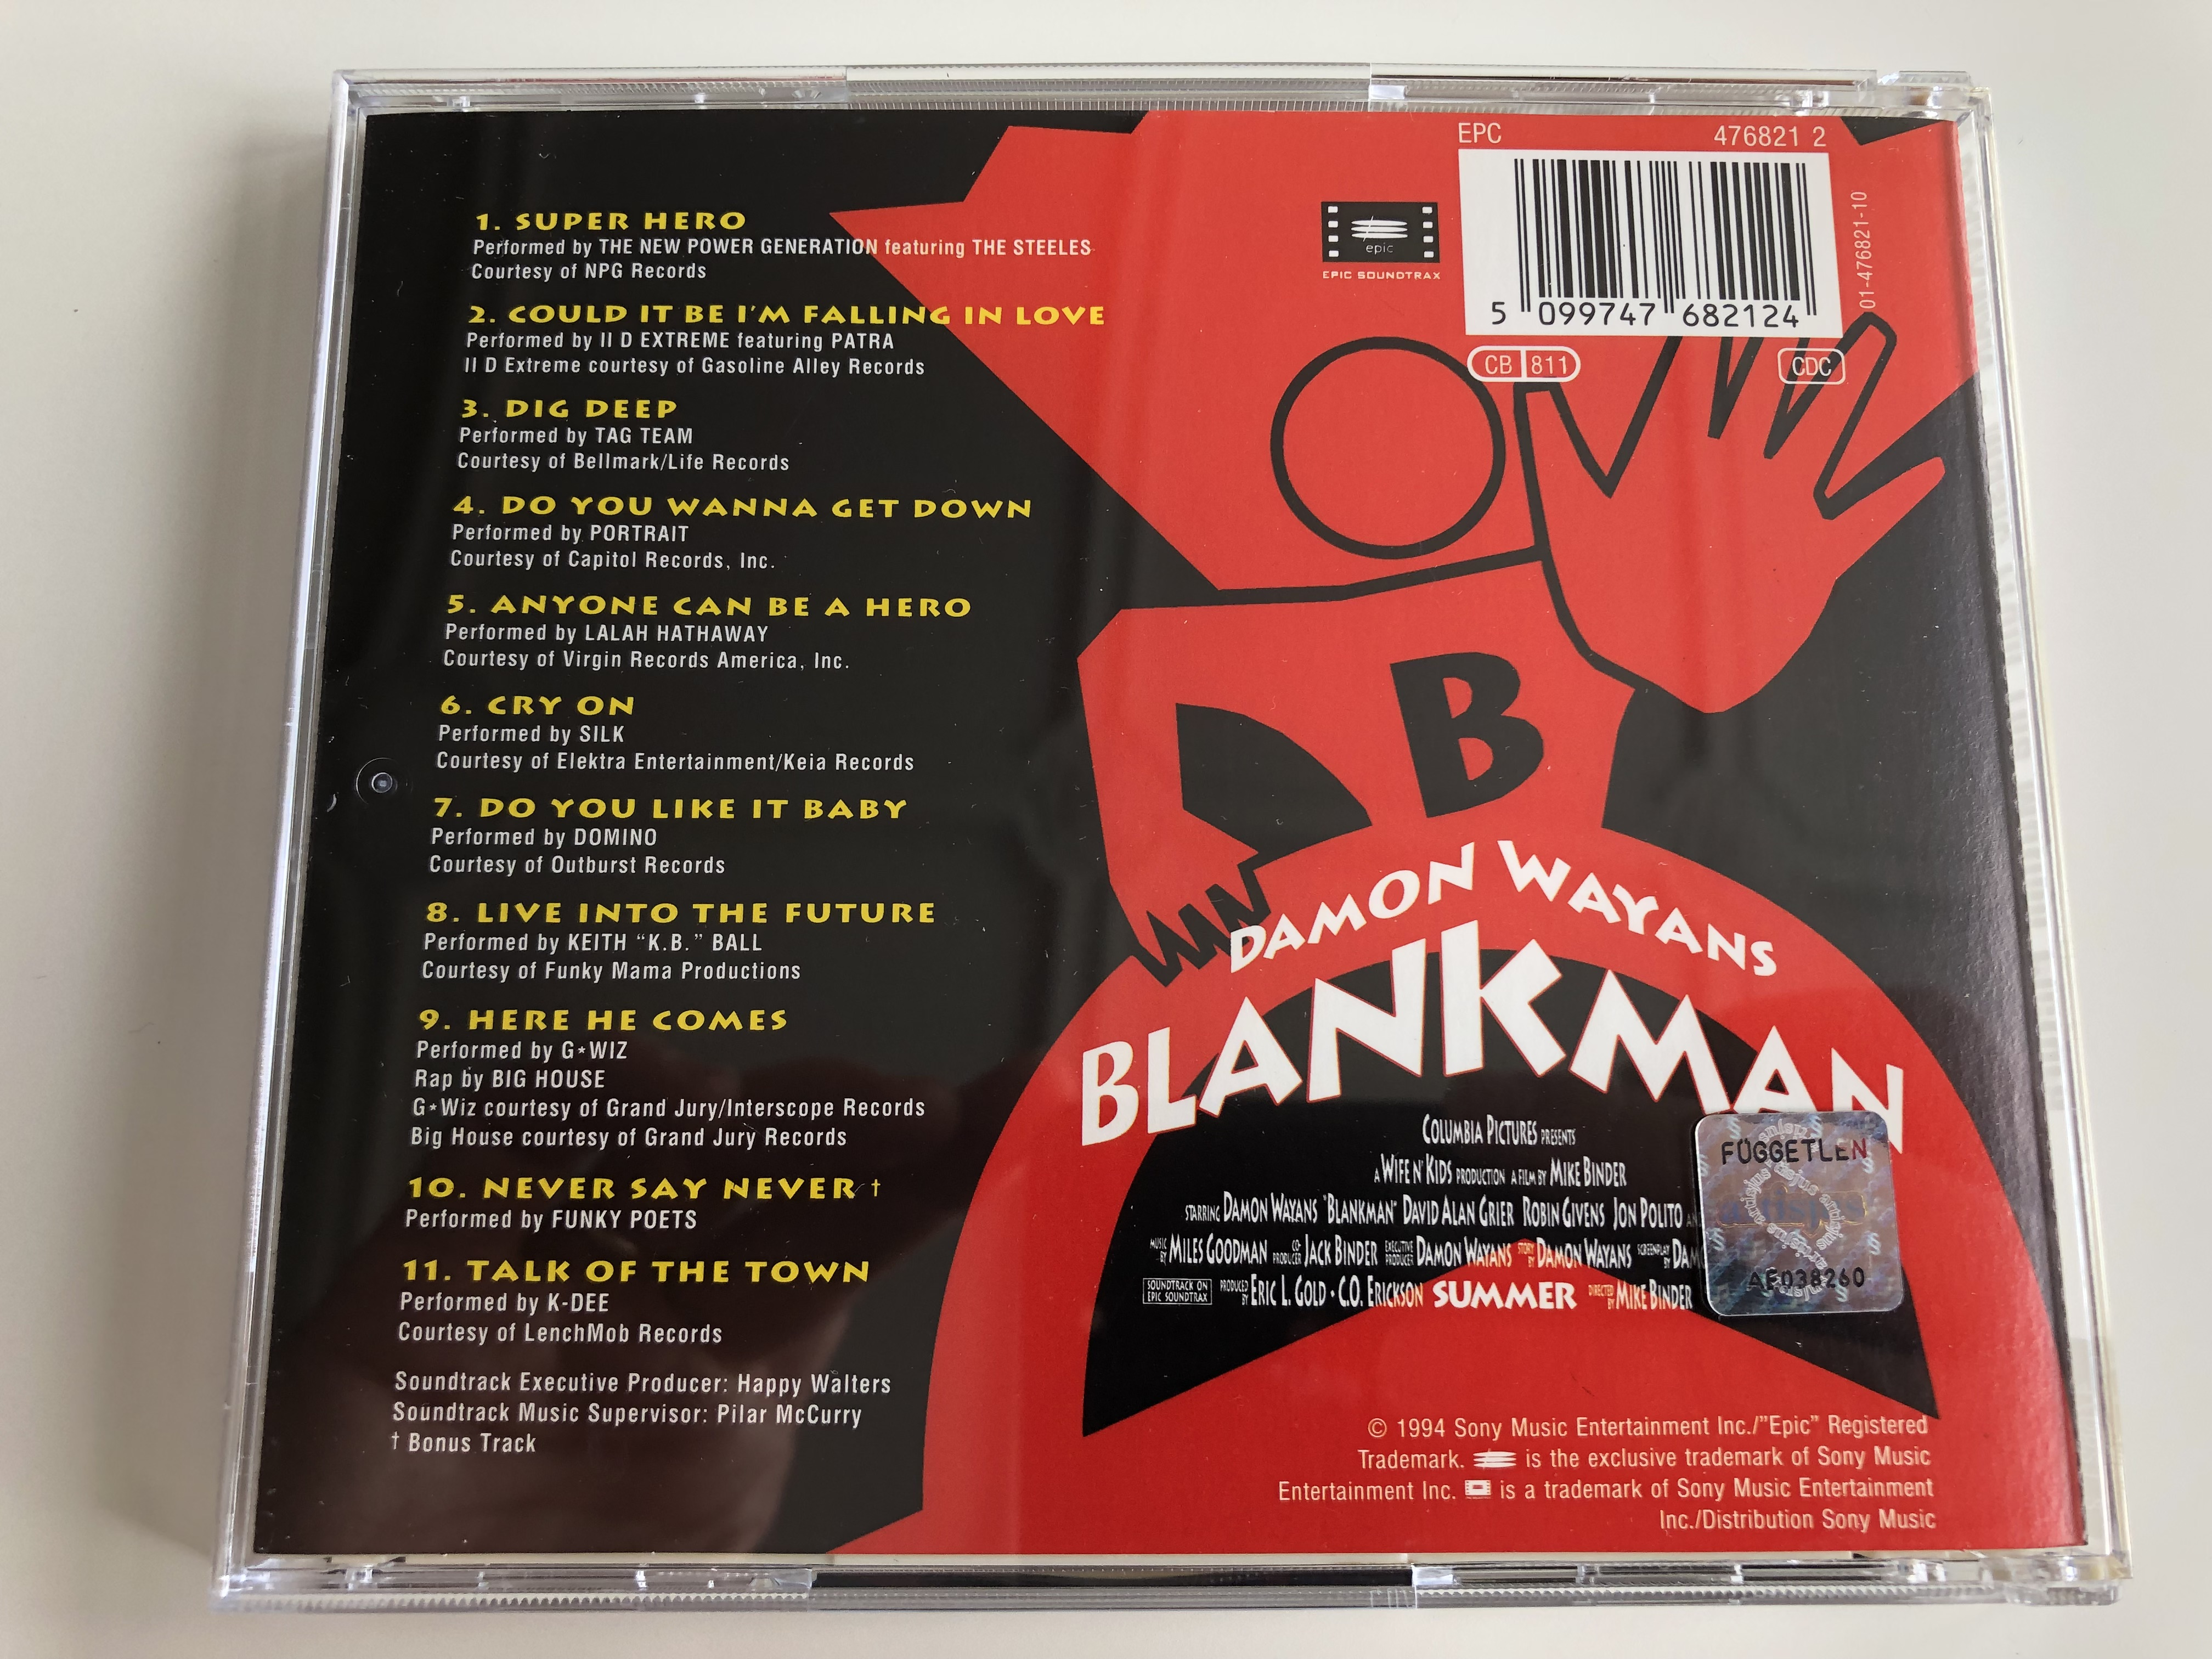 damon-wayans-blankman-music-from-the-motion-picture-the-new-power-generation-featuring-the-steeles-ii-d-extreme-featuring-patra-silk-tag-team-portrait-lalah-hathaway-keith-k.b.-ball-5-.jpg